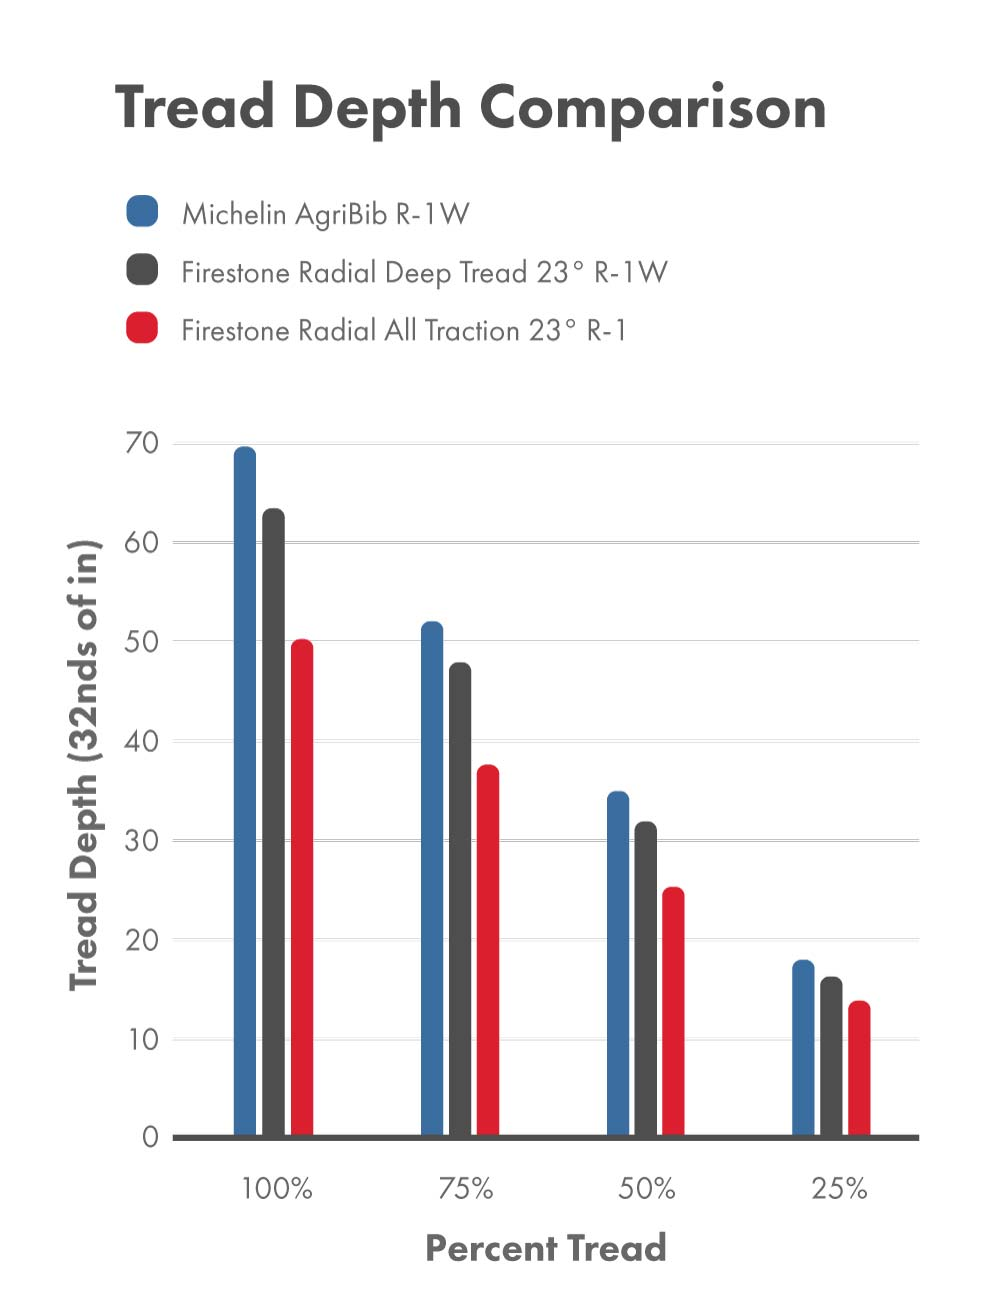 Tread depth comparison between the Firestone Radial All Traction 23° R-1 tire, Firestone Radial Deep Tread 23° R-1W tire, and Michelin AgriBib R-1W tire